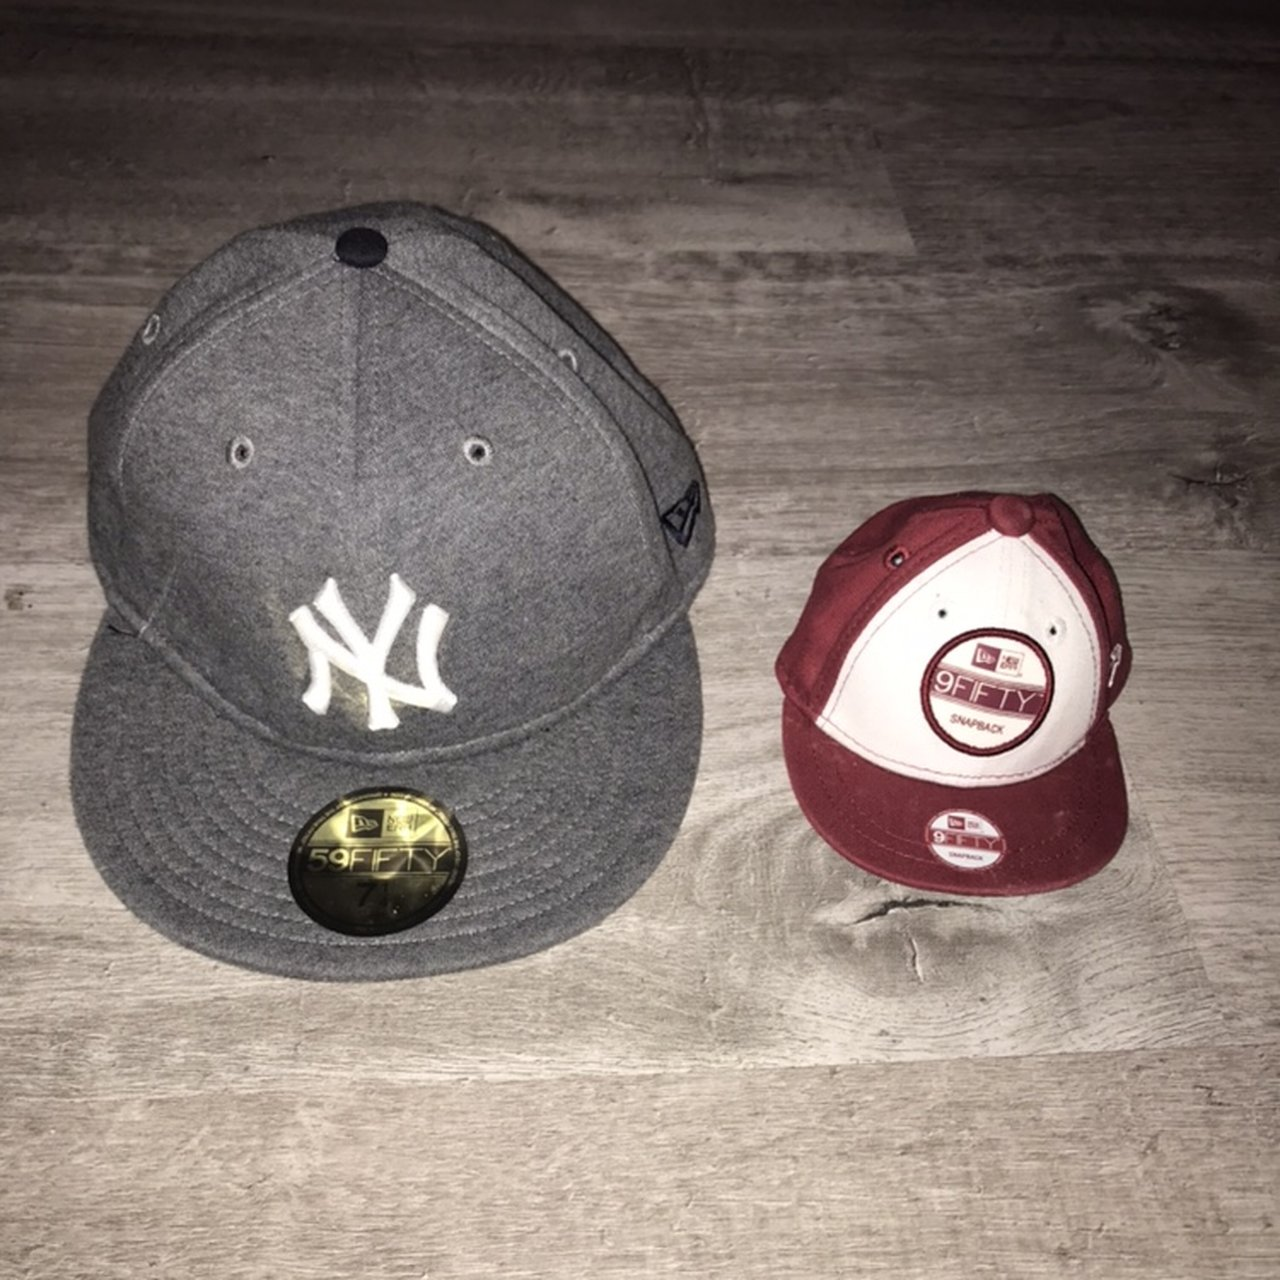 d0dfe27813f New era 9 fifty mini cap x 2 picture 1 and 2 novelty size do - Depop